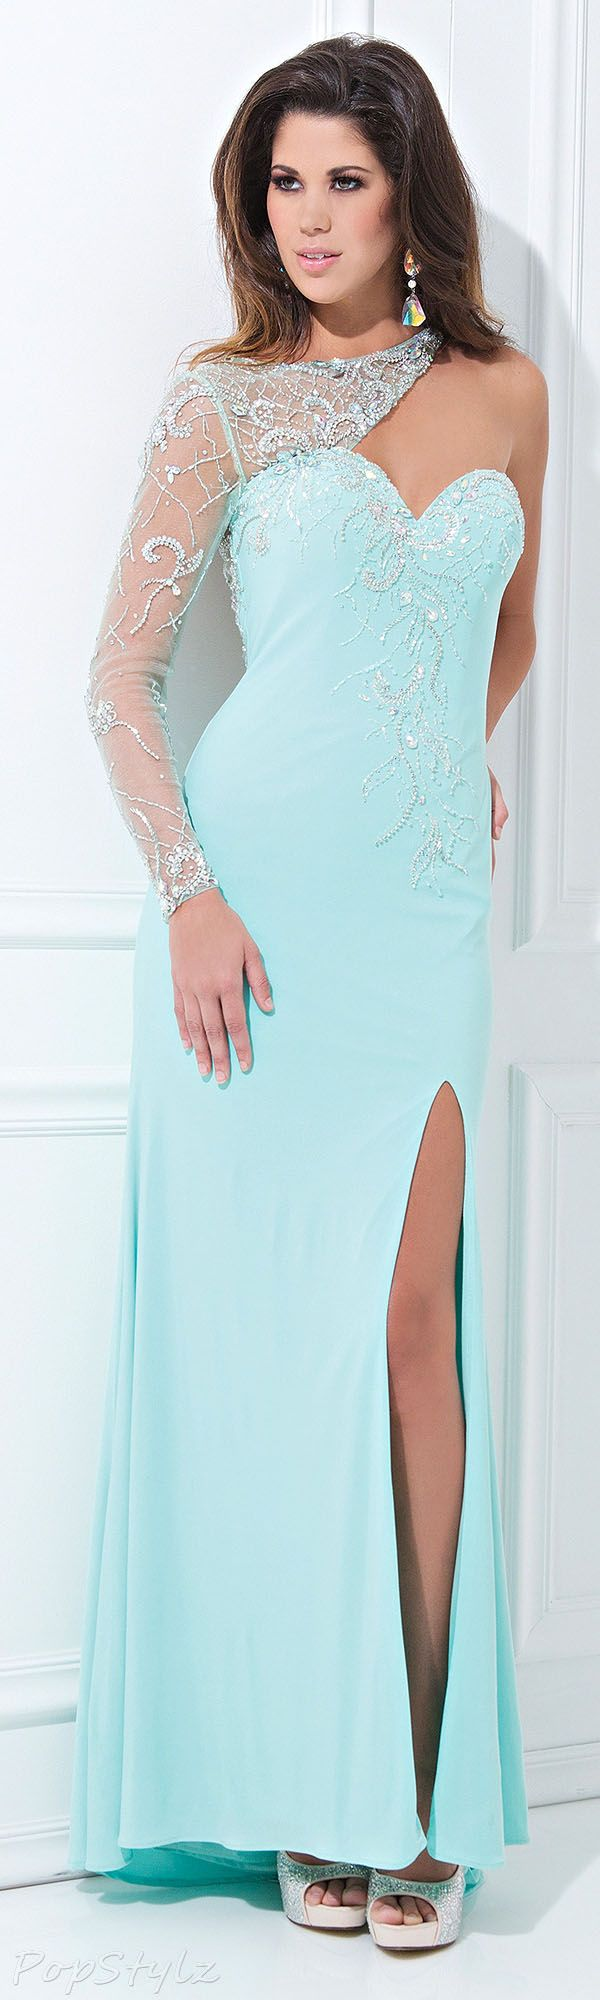 Tony Bowls TBE11422 Evening Gown